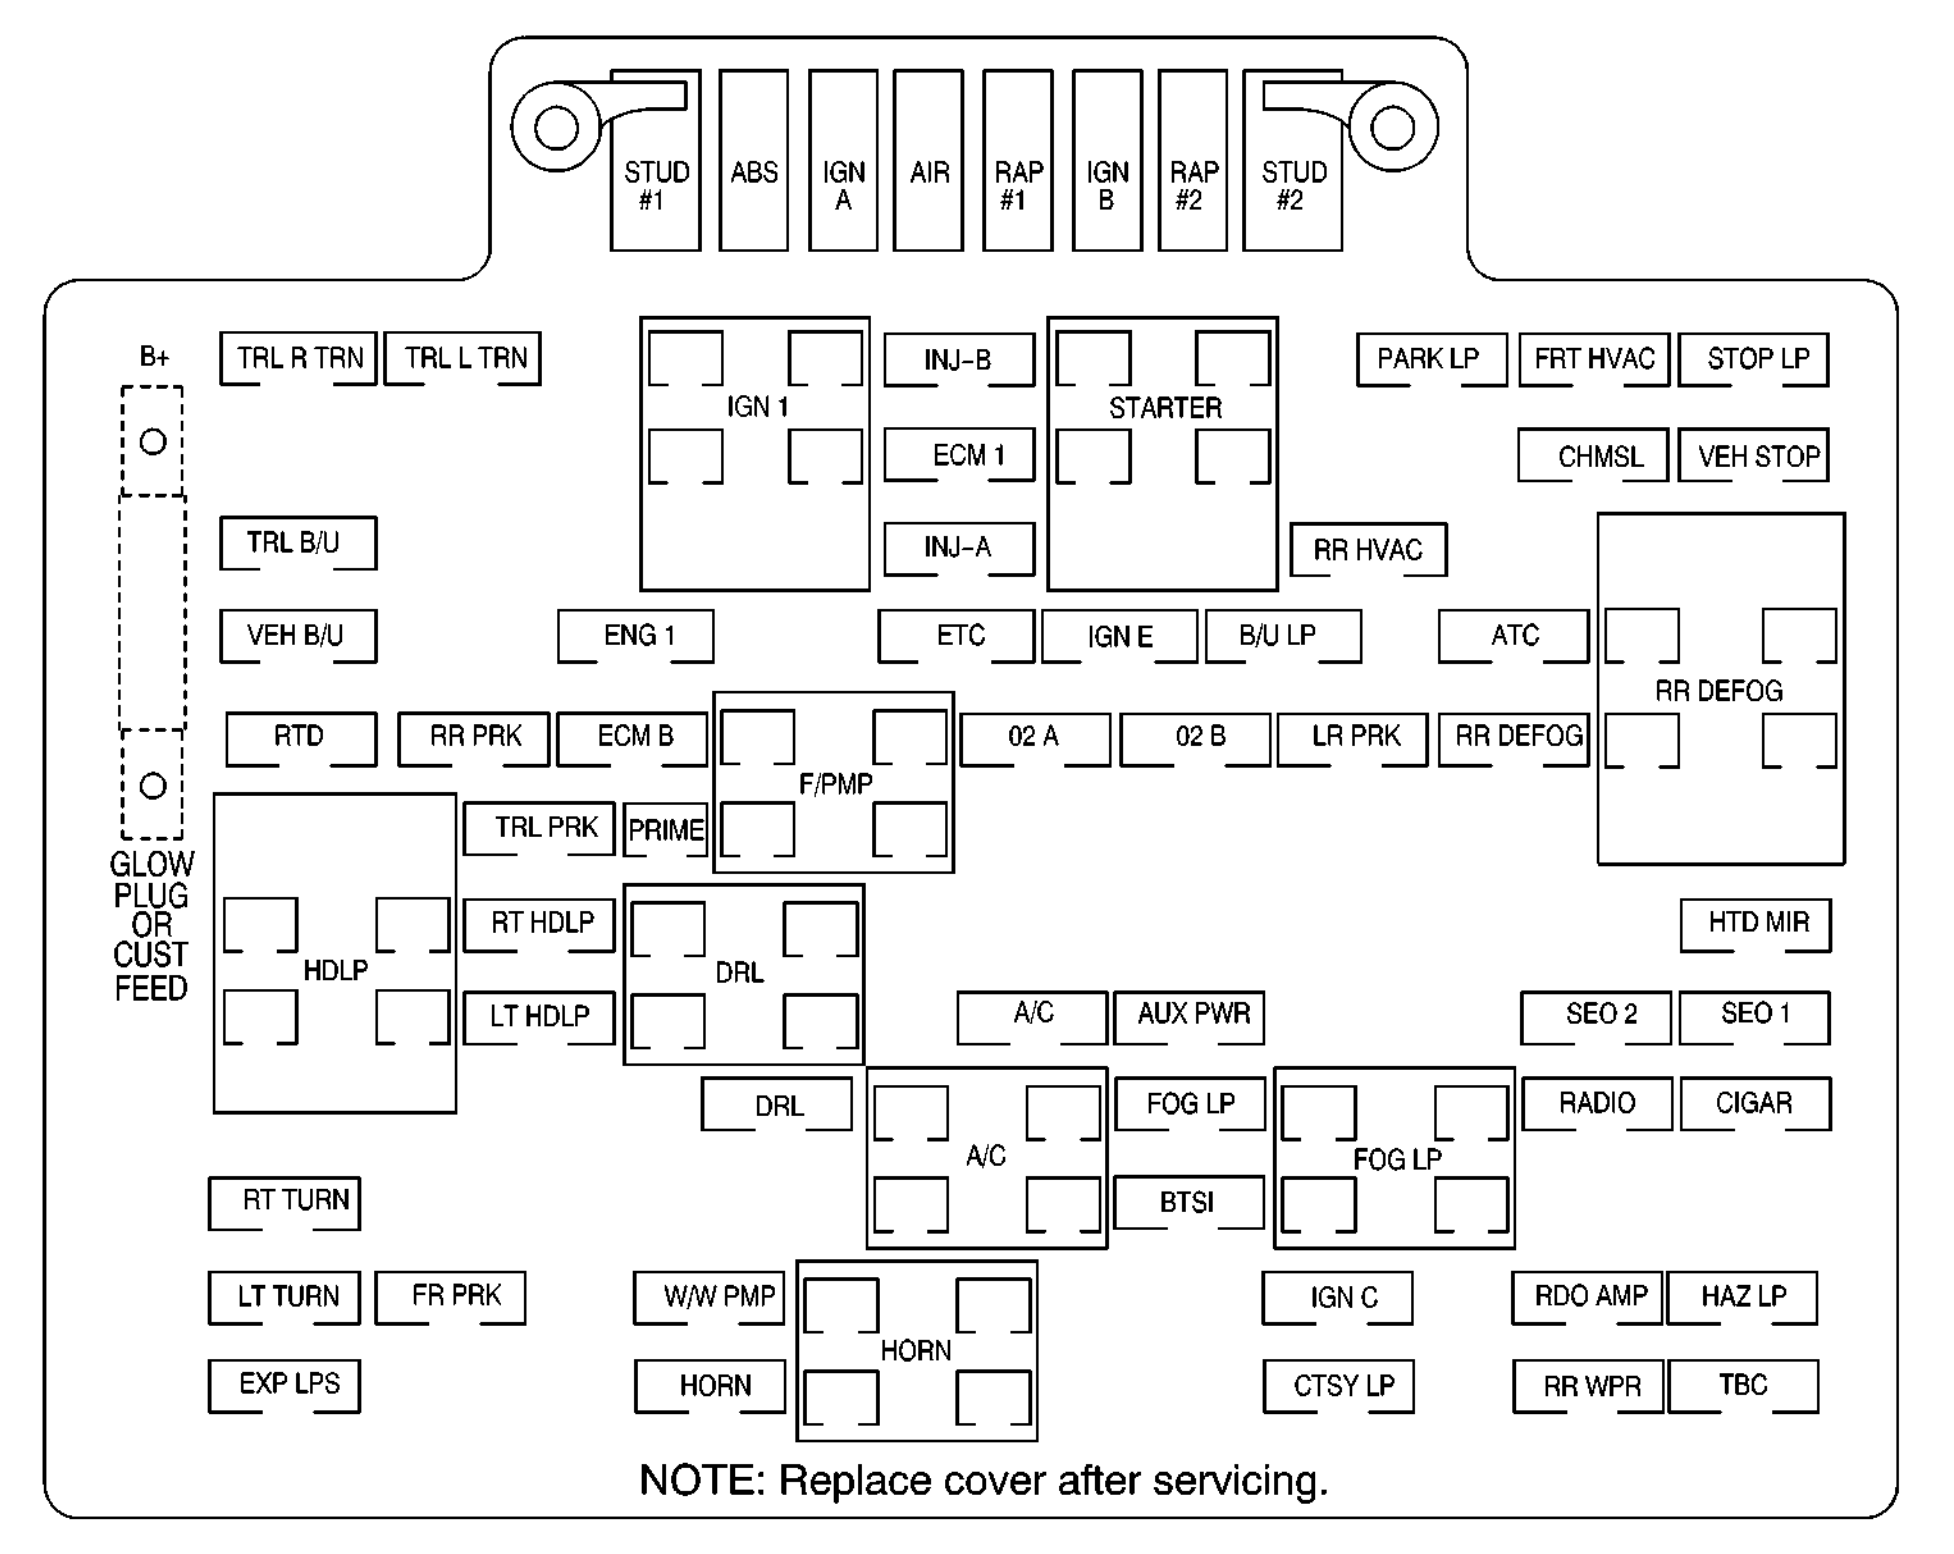 2002 Suburban Fuse Diagram - Wiring Diagram M10 on